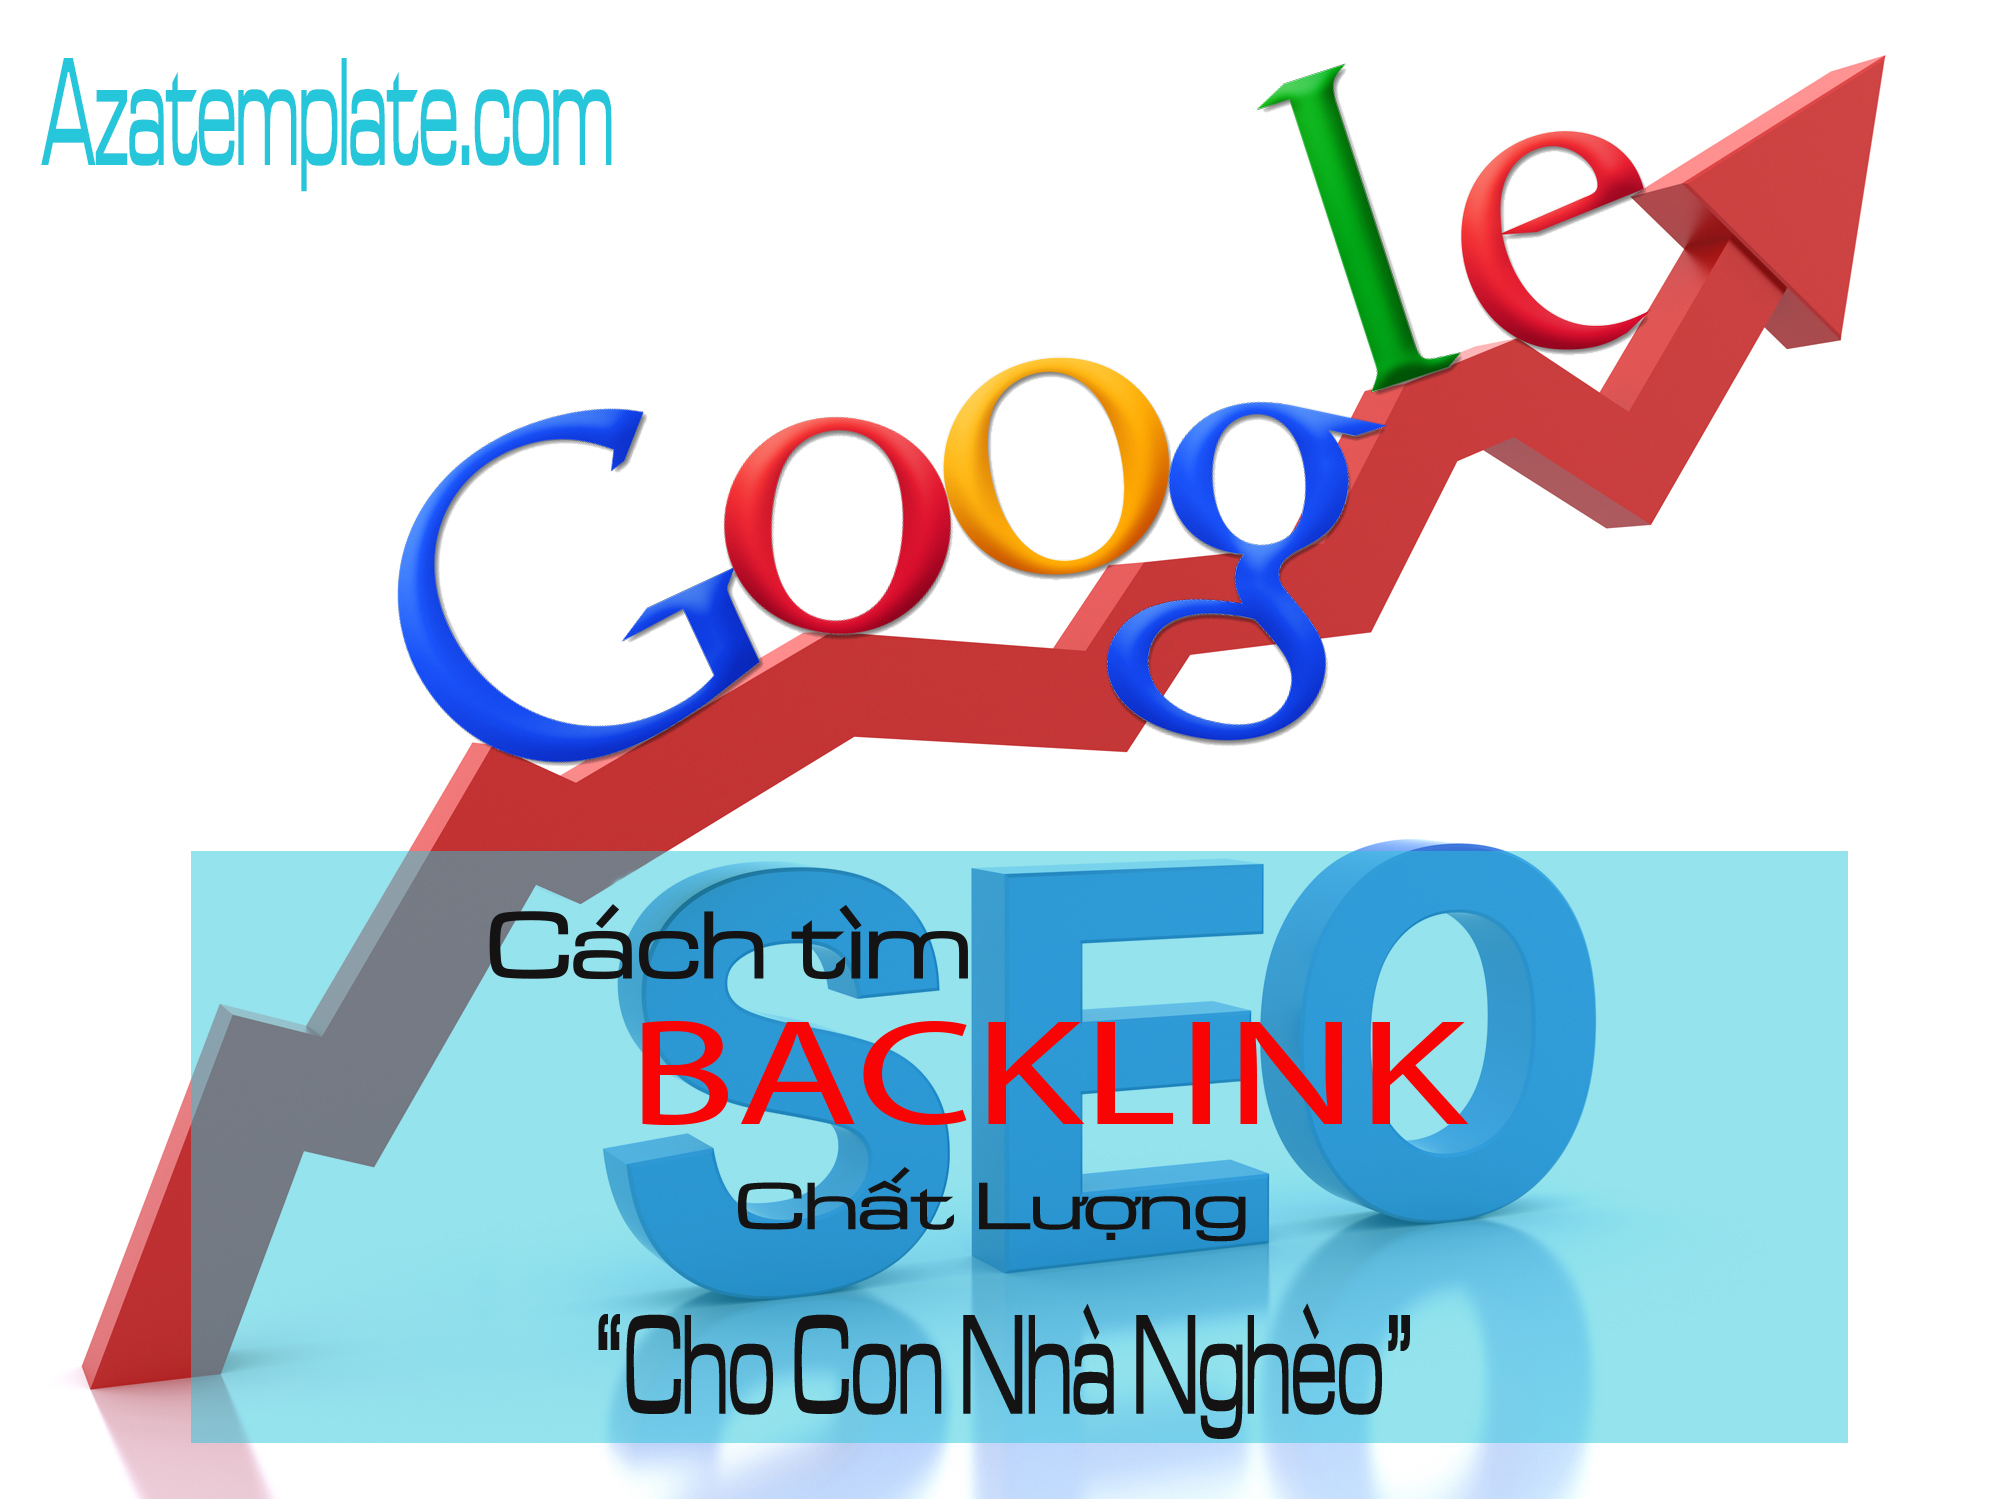 cach-tim-backlink-chat-luong.jpg